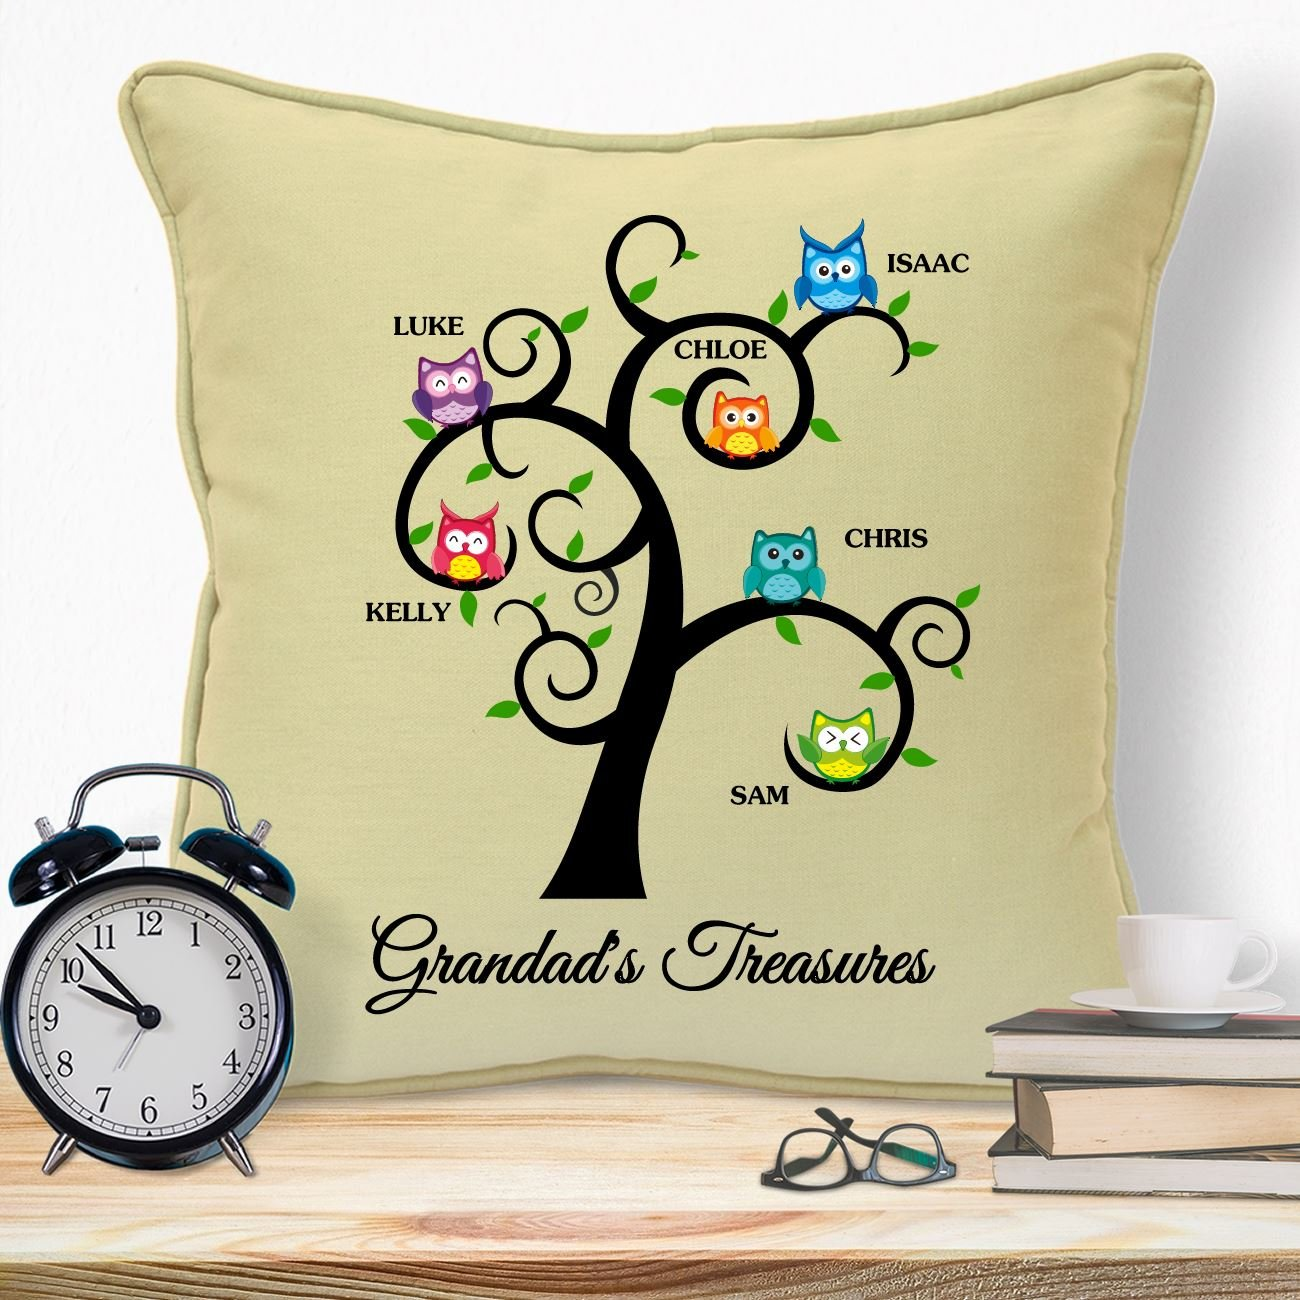 Personalised Gifts For Grandad Grandpa Grandfather Papa Pops Daddy Young Fathers Day Birthday Christmas Xmas From Grandson Daughter Bump Grandchildren Kids Unique Ideas Grandads Treasures Cushion